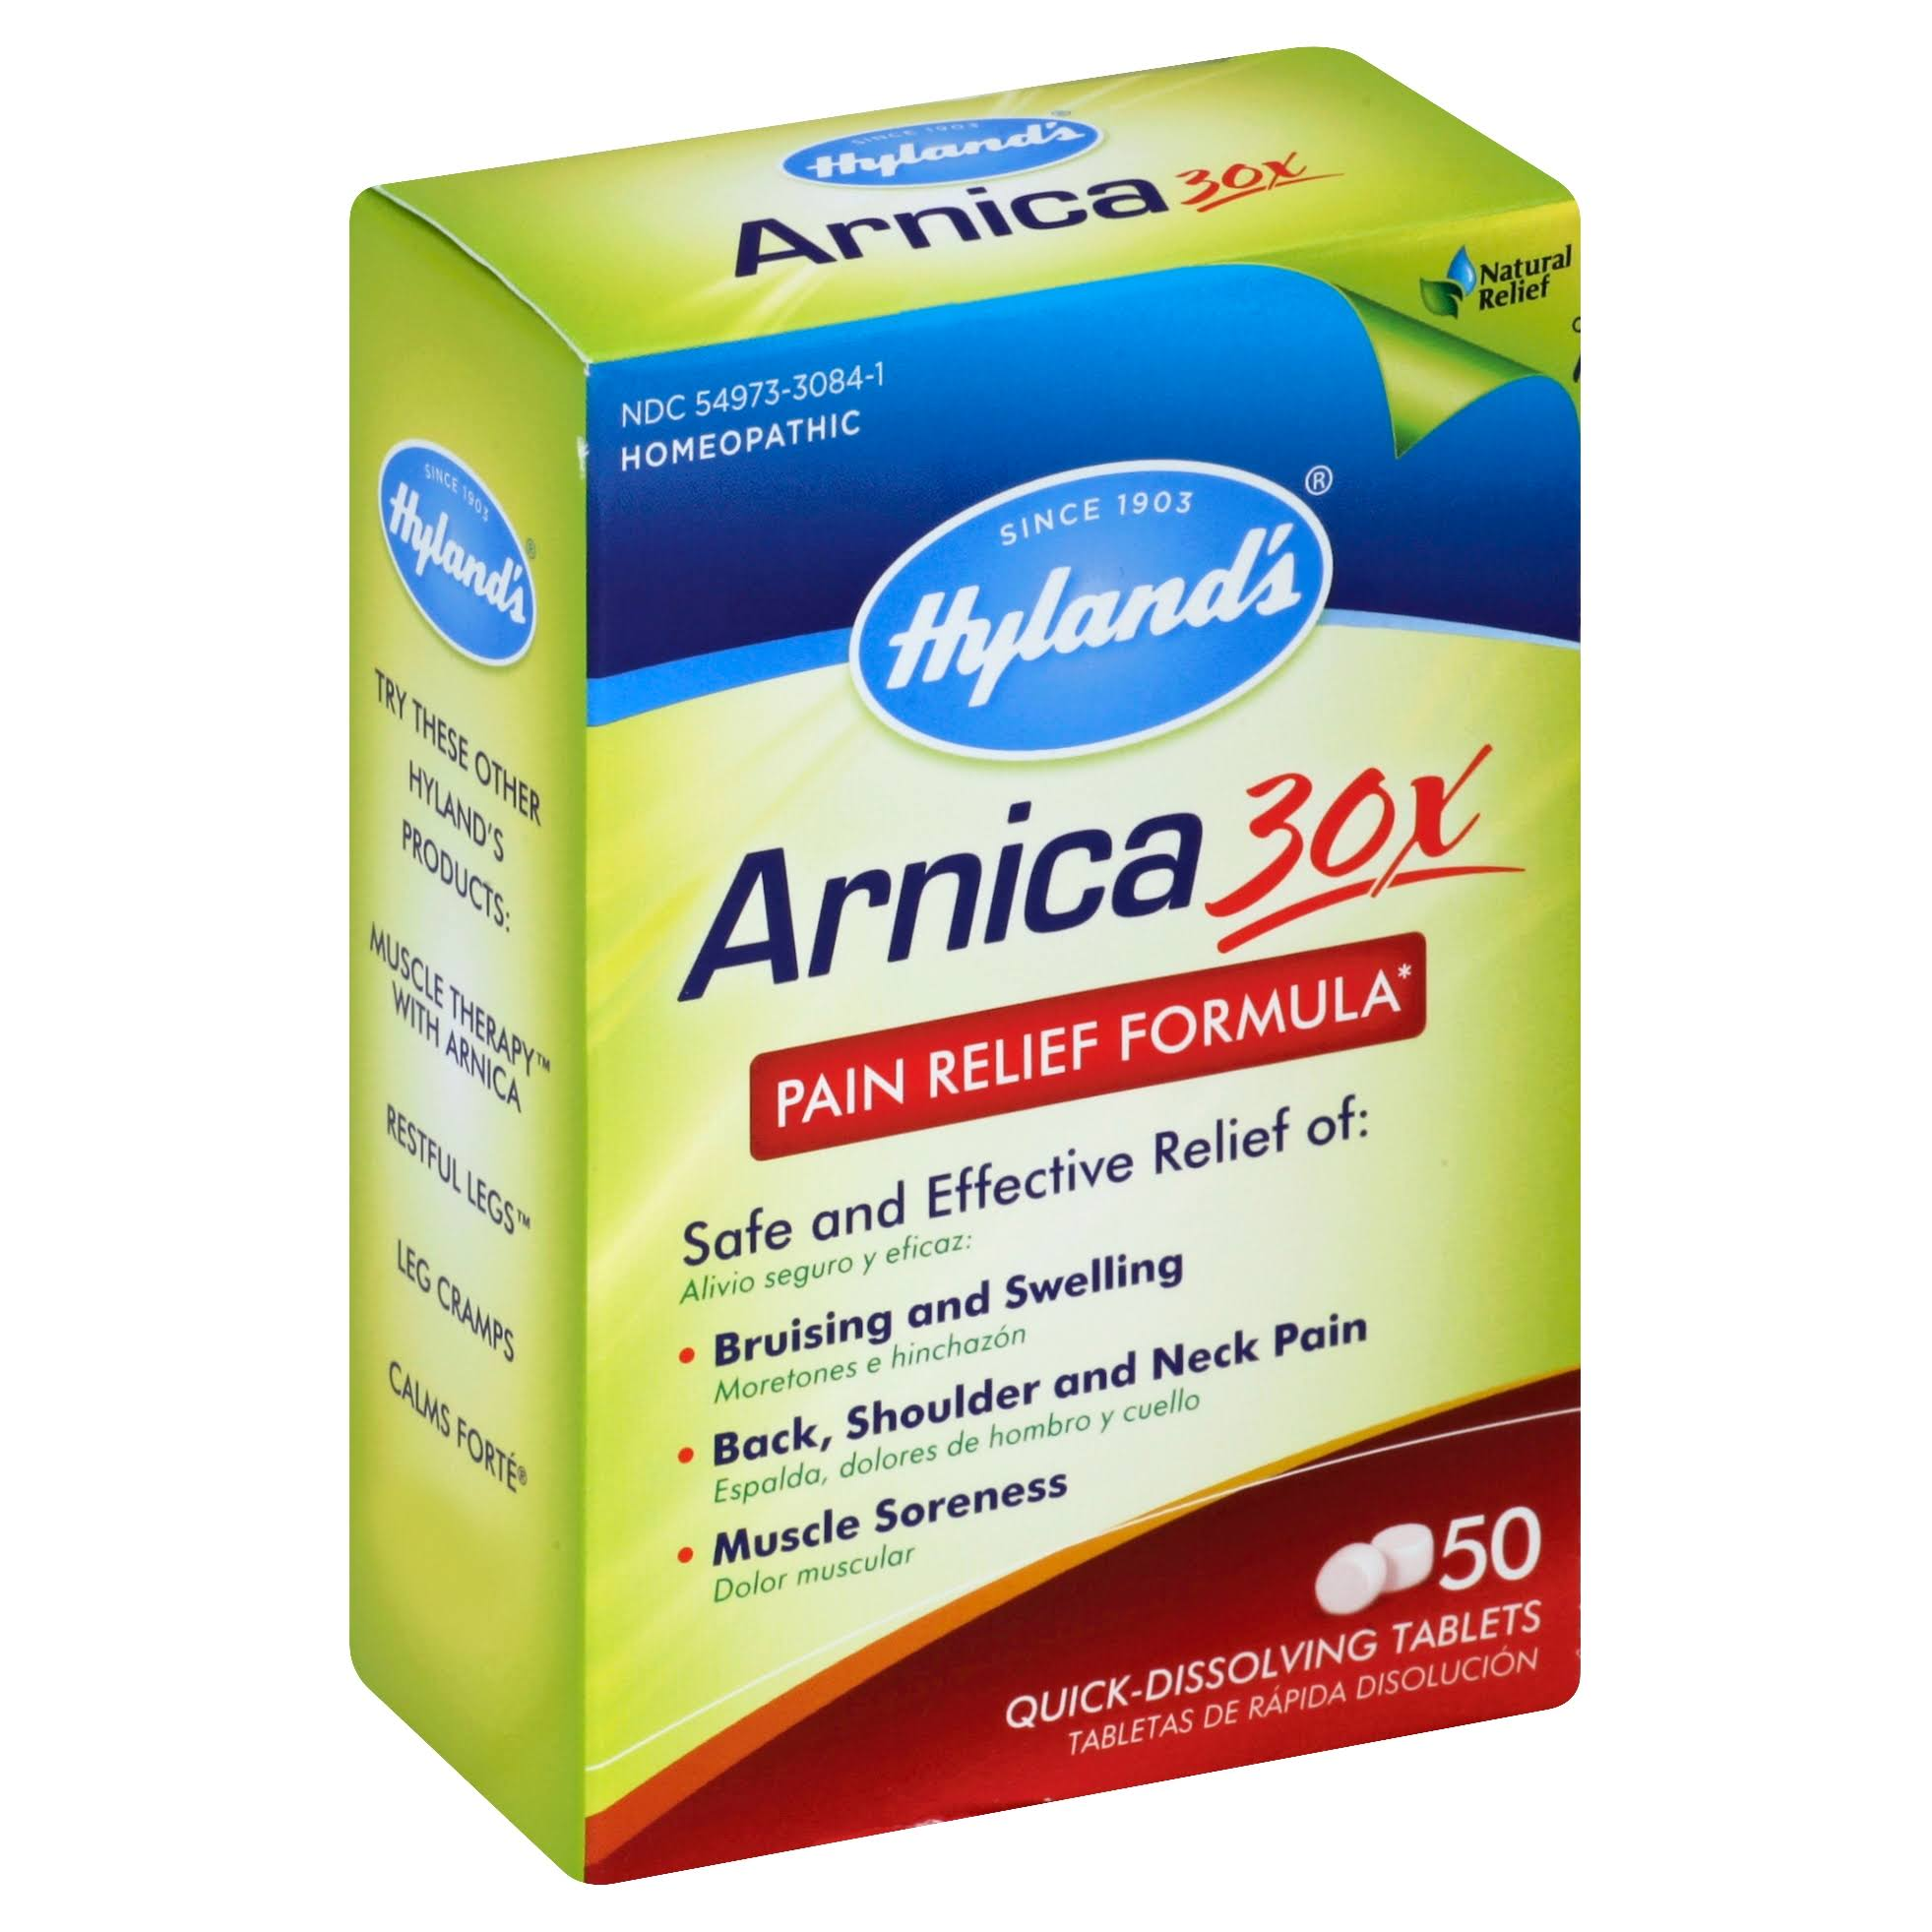 Hyland's Arnica 30X Pain Relief Formula - 50 Tablets